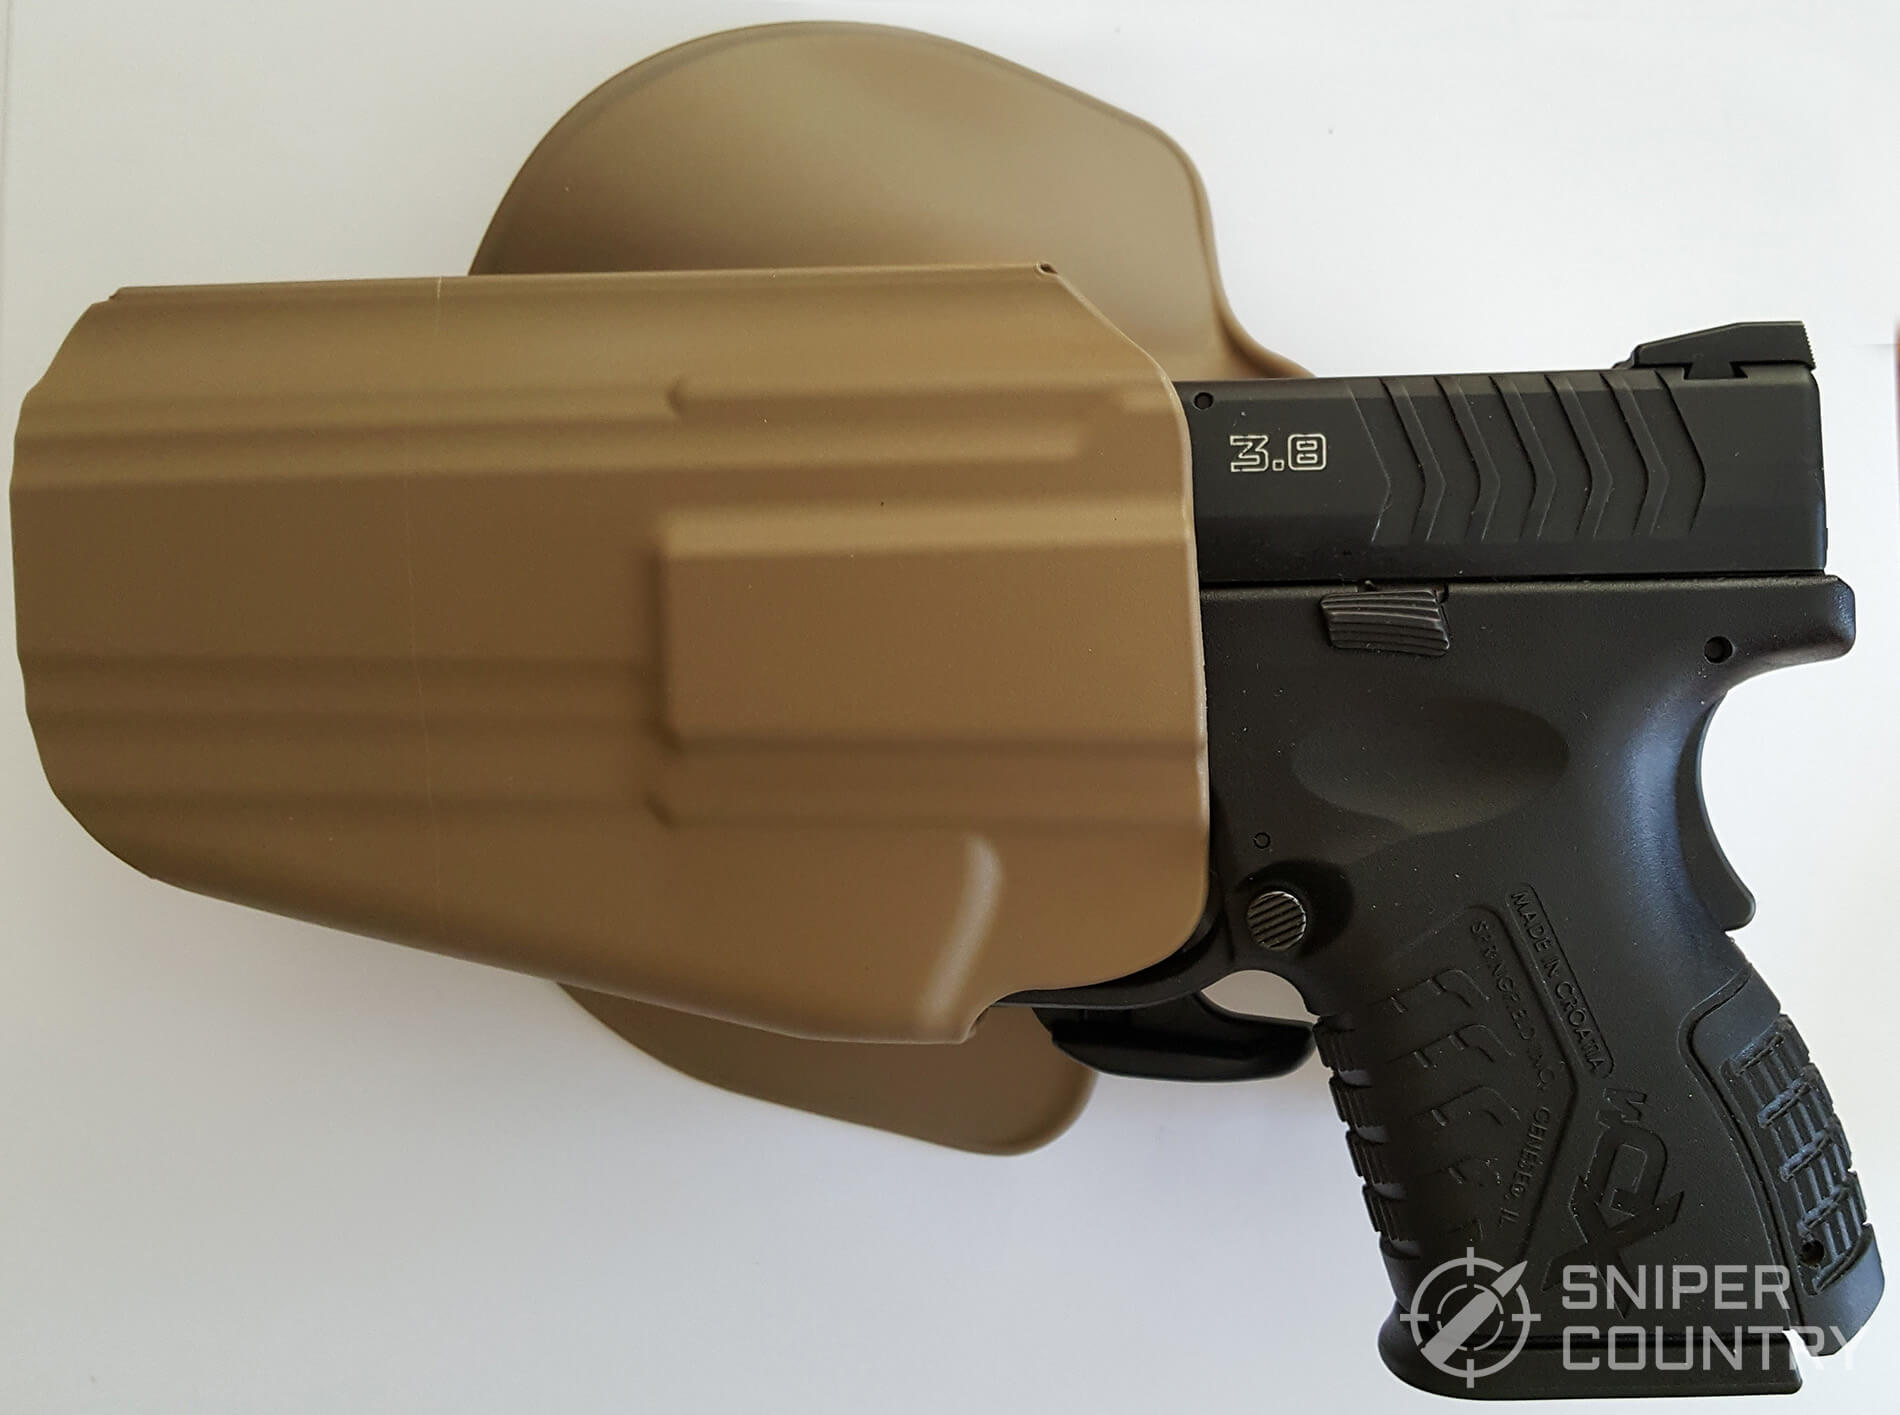 Safariland 578 GLS Pro-Fit Holster open side with Springfield XDm